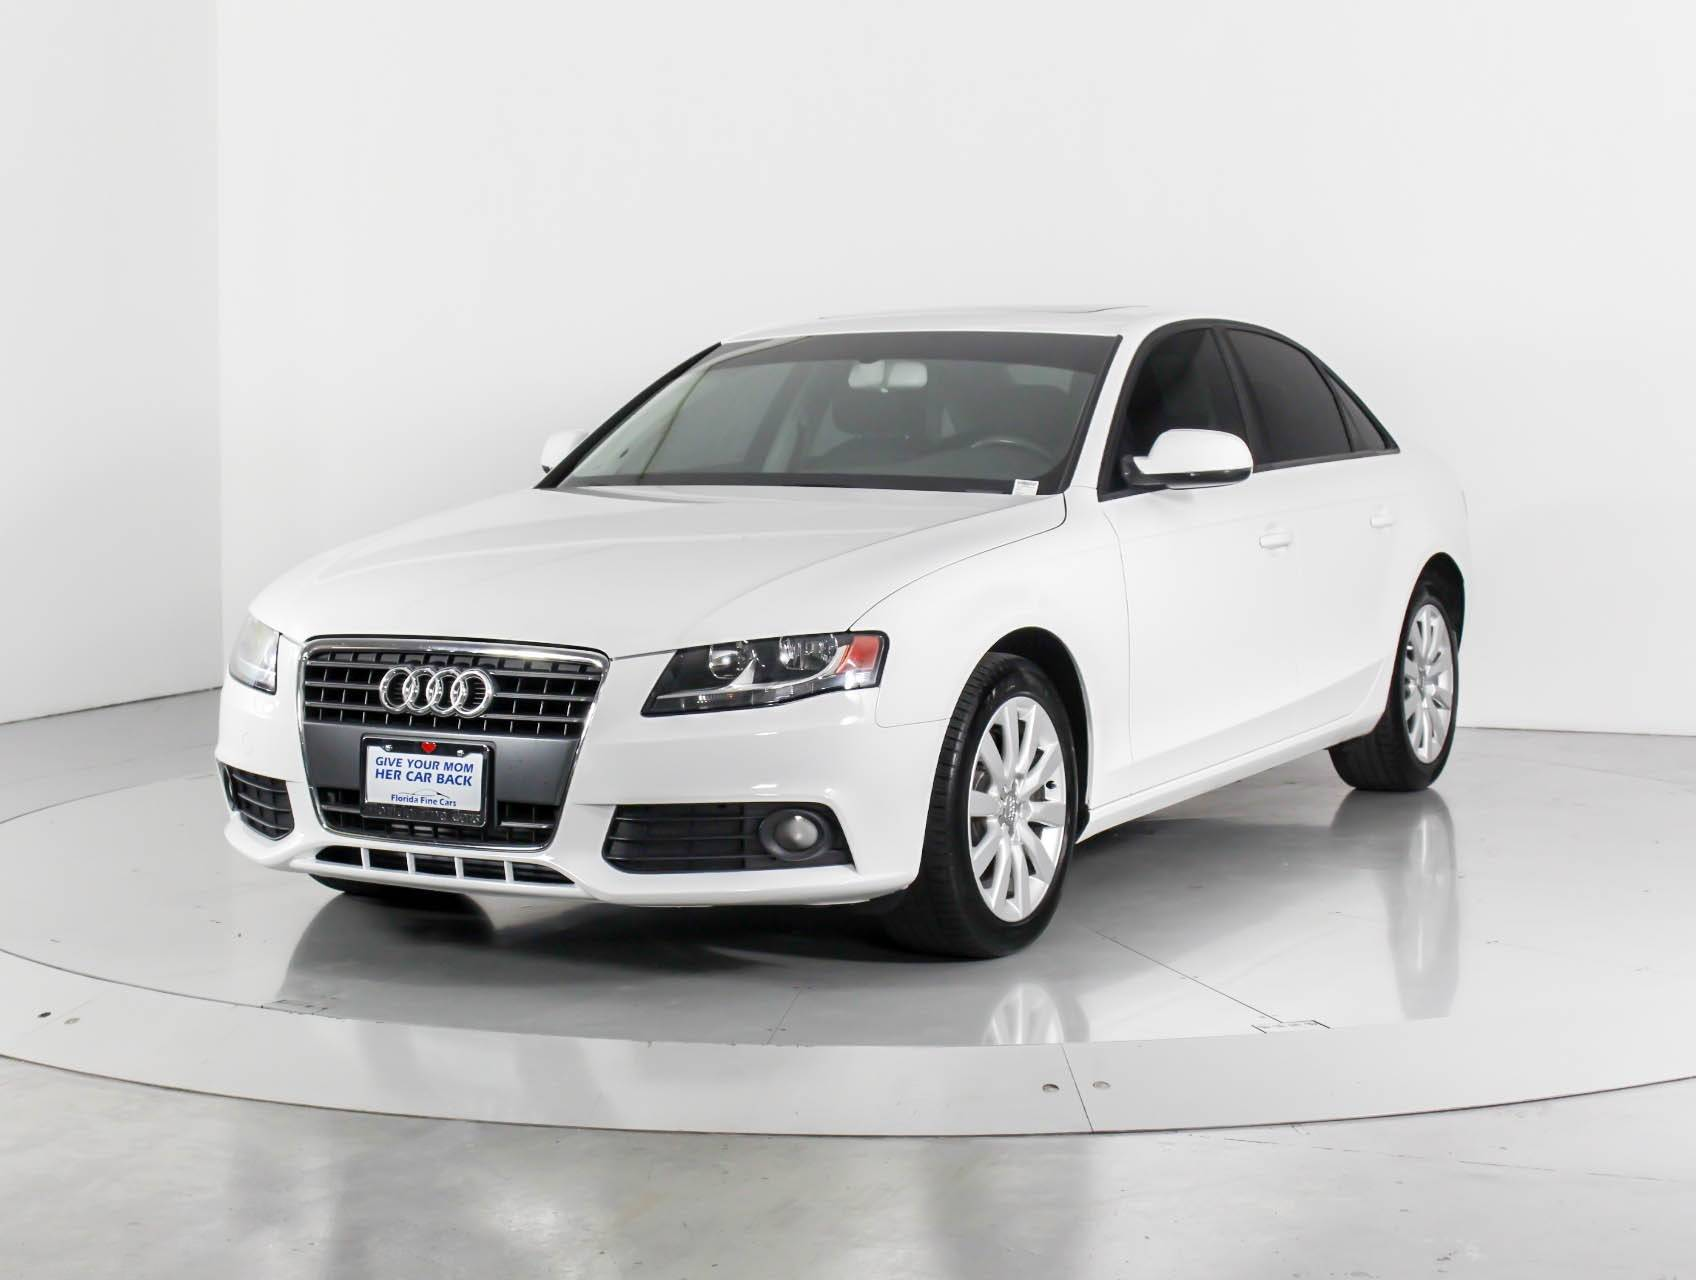 used 2012 audi a4 premium sedan for sale in west palm, fl | 98851 | florida  fine cars